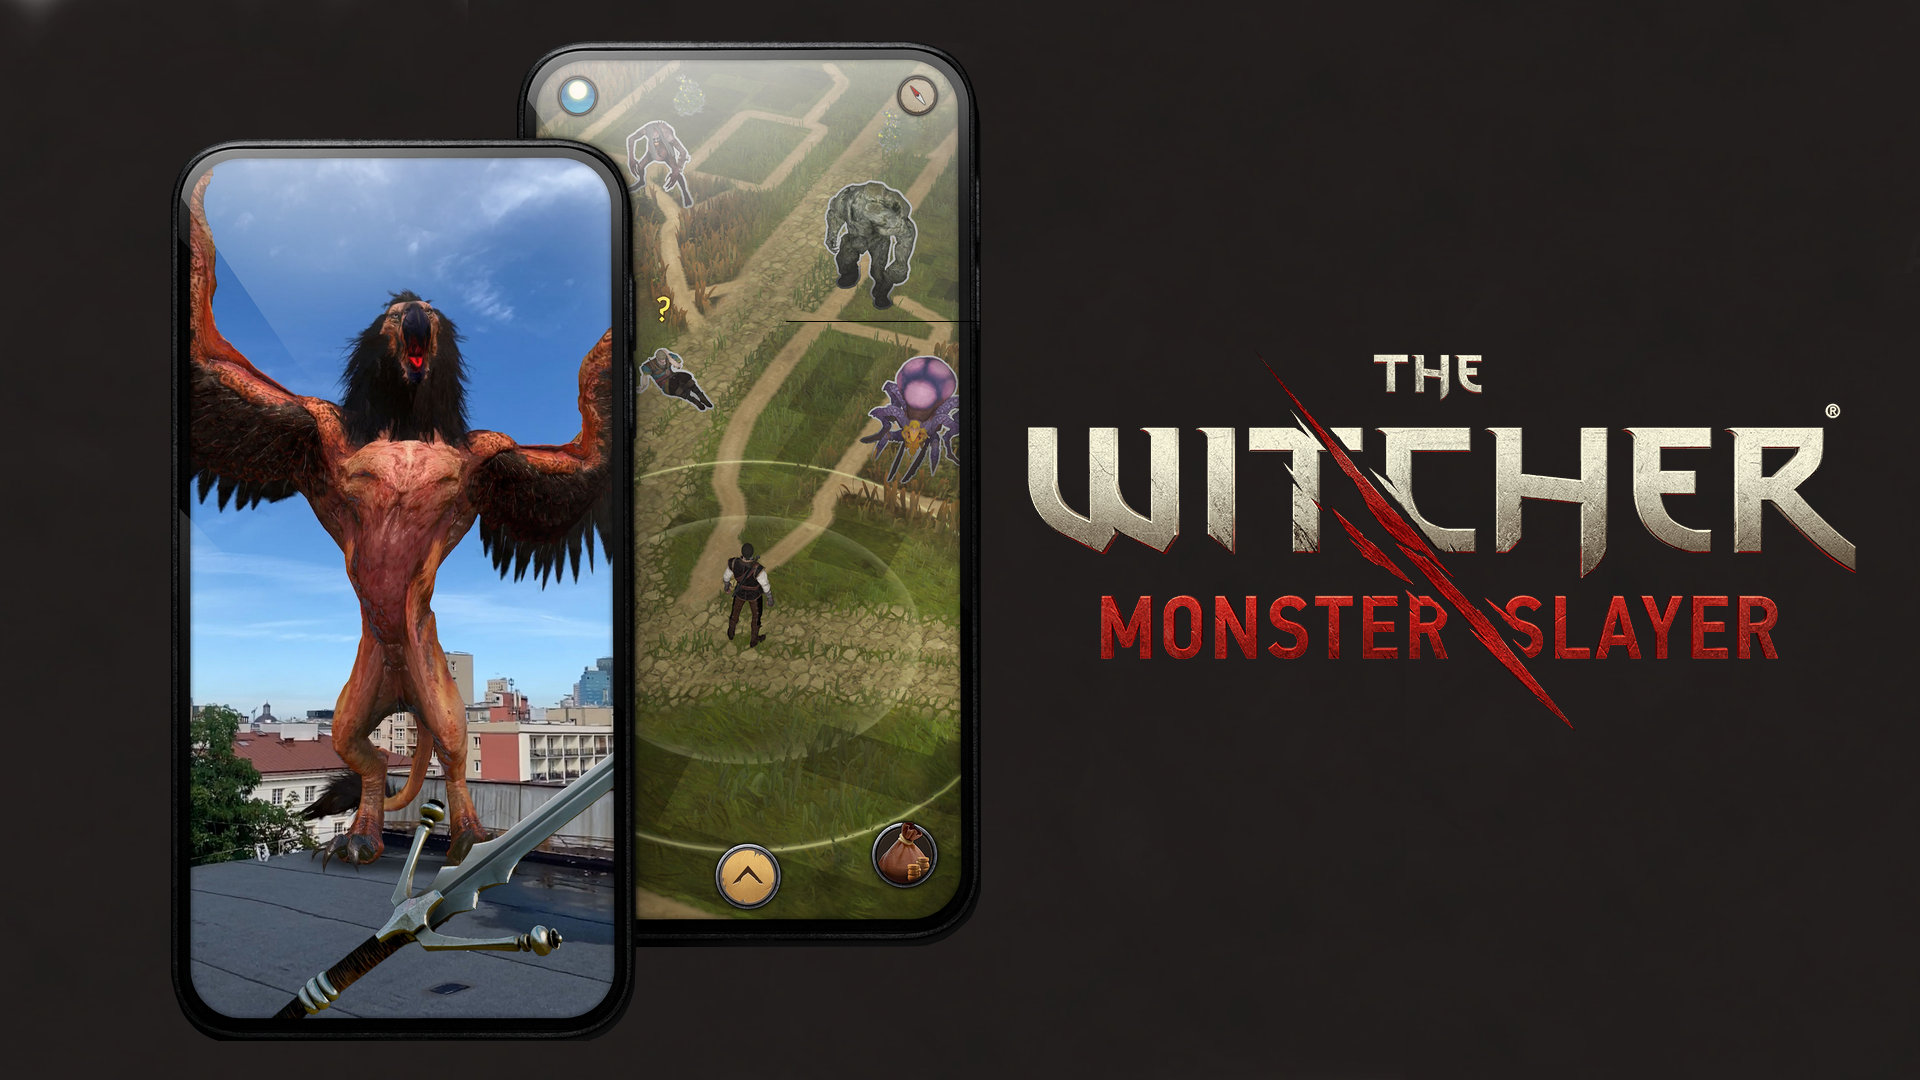 The Witcher: Monster Slayer cover